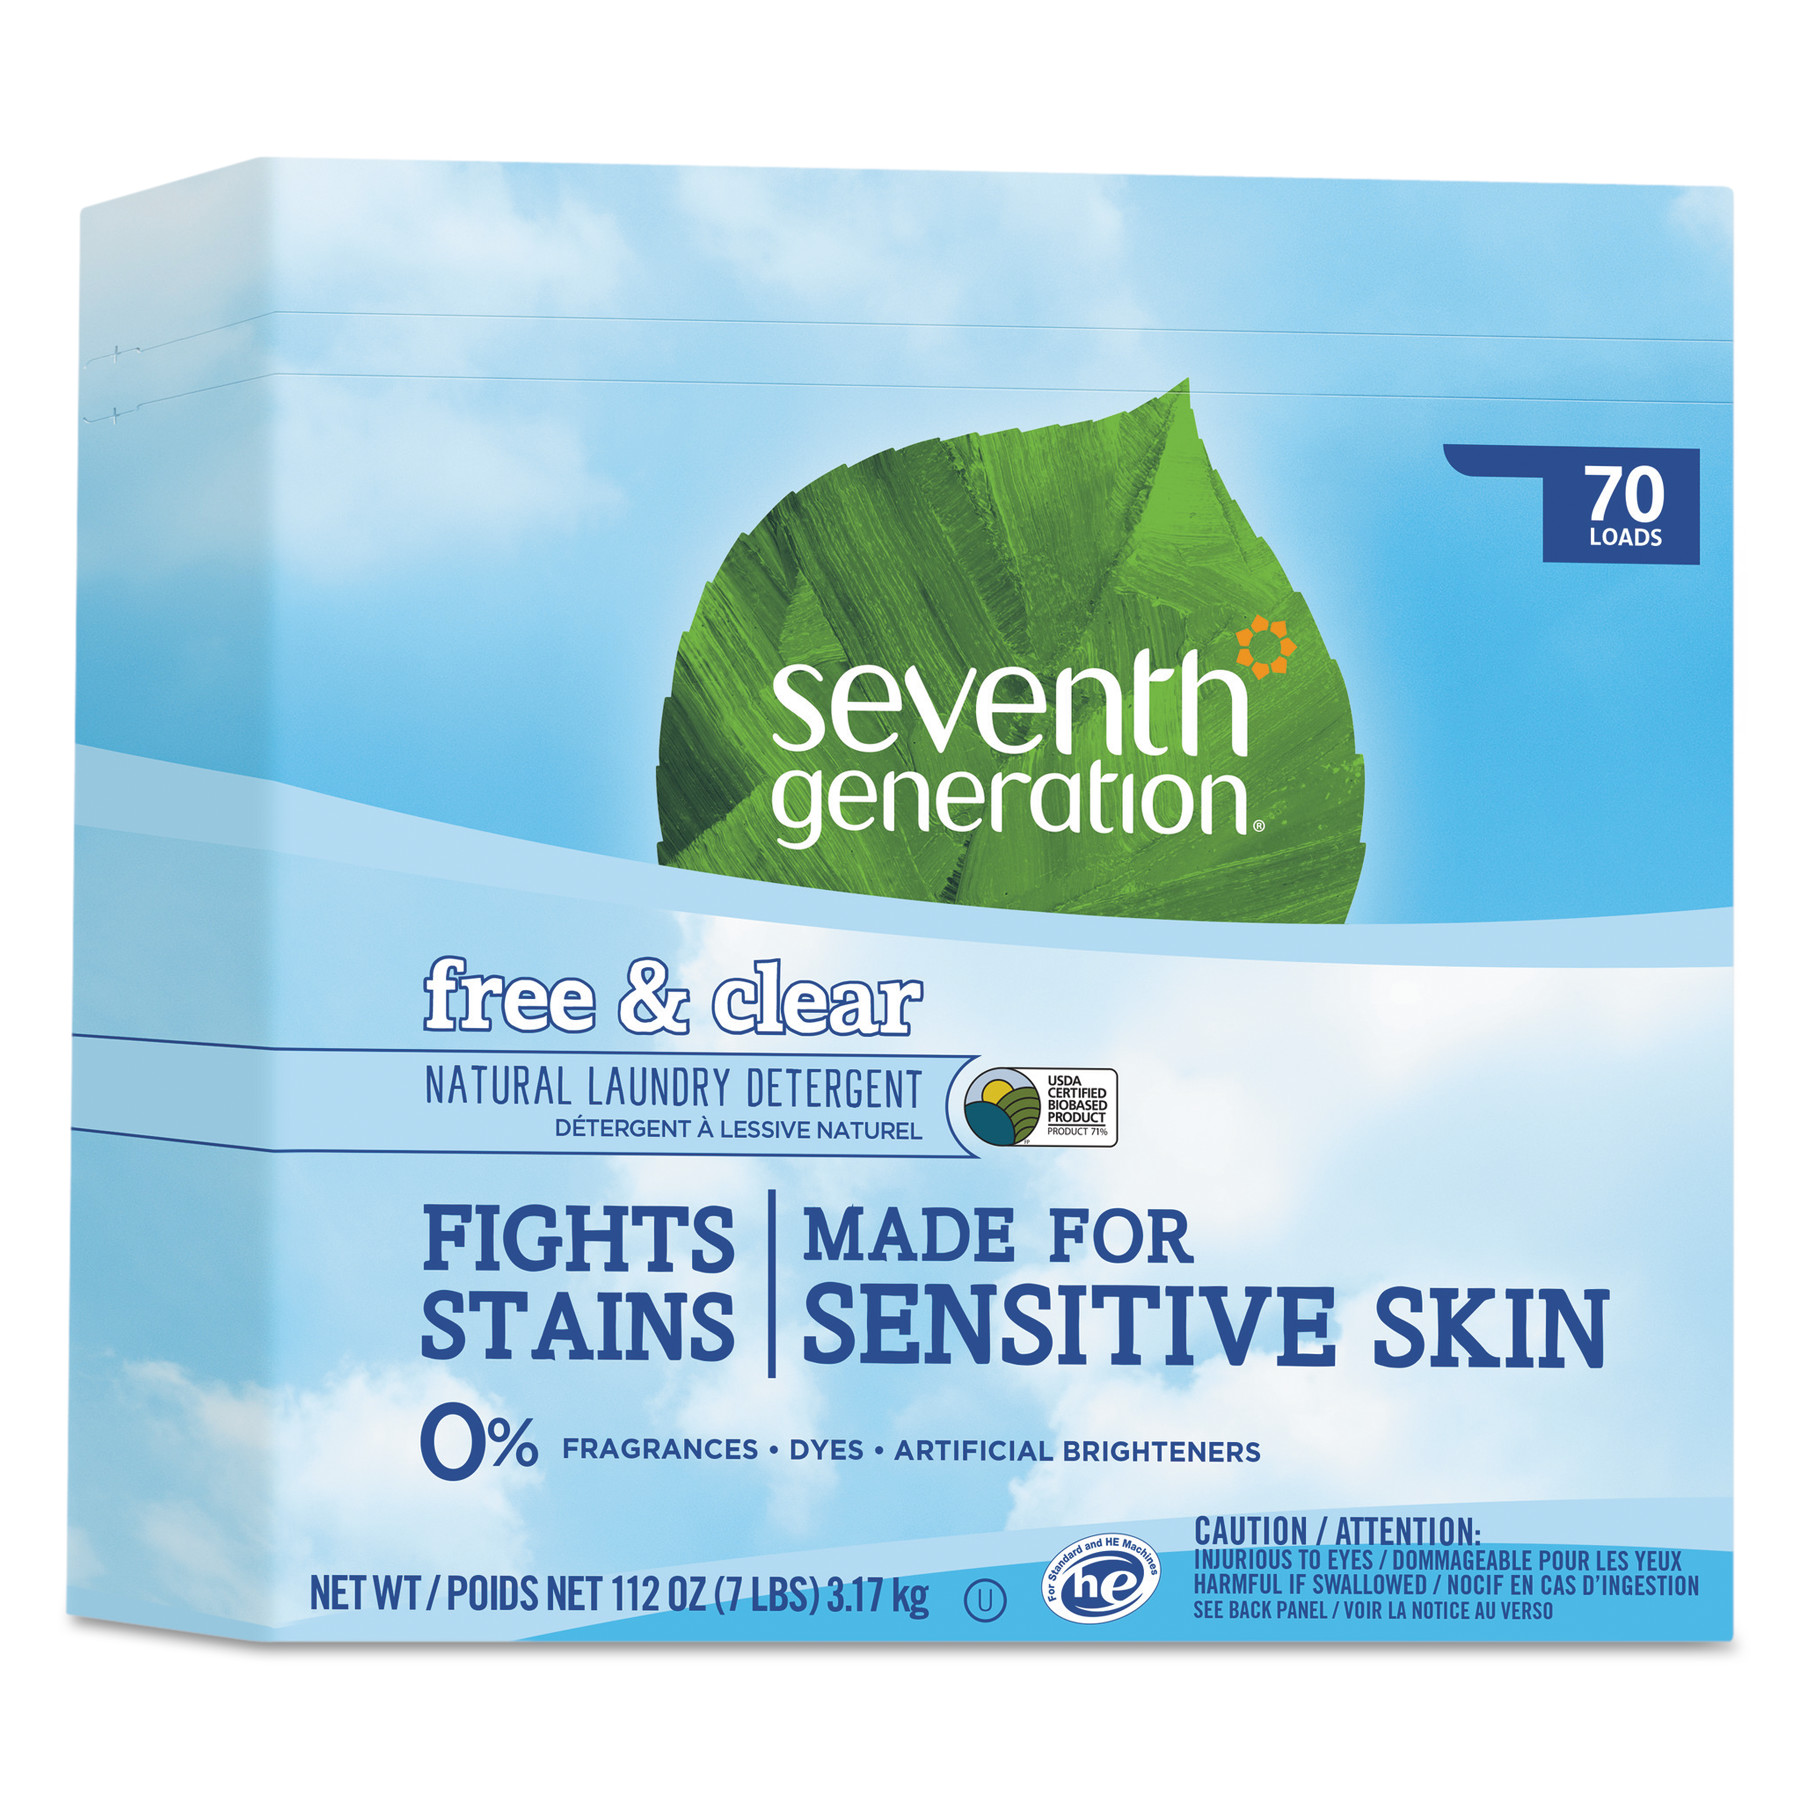 Seventh Generation Natural Powder Laundry Detergent, Free & Clear, 70 Loads, 112 oz Box